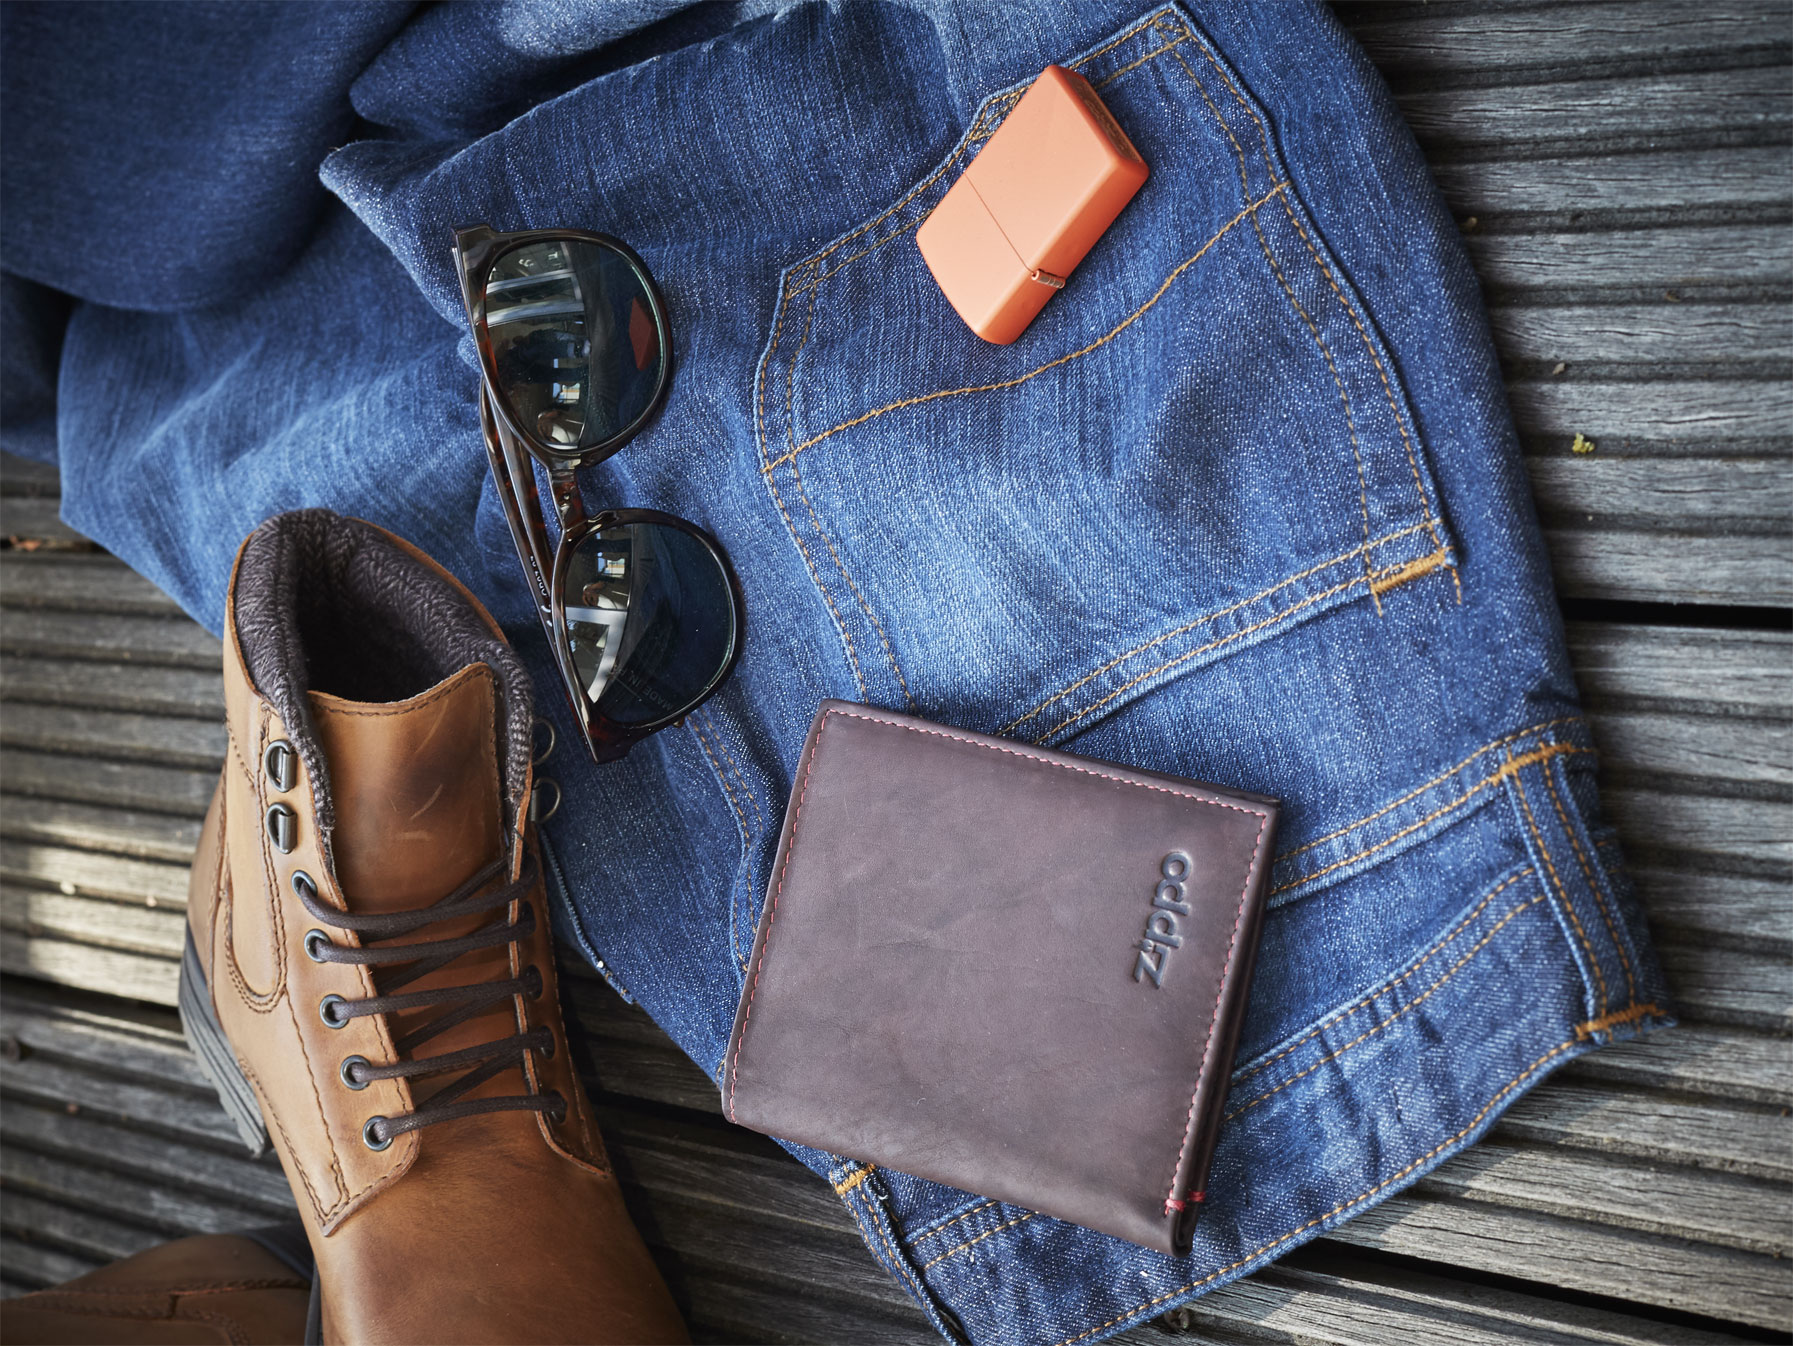 Zippo Wallet and Accessories